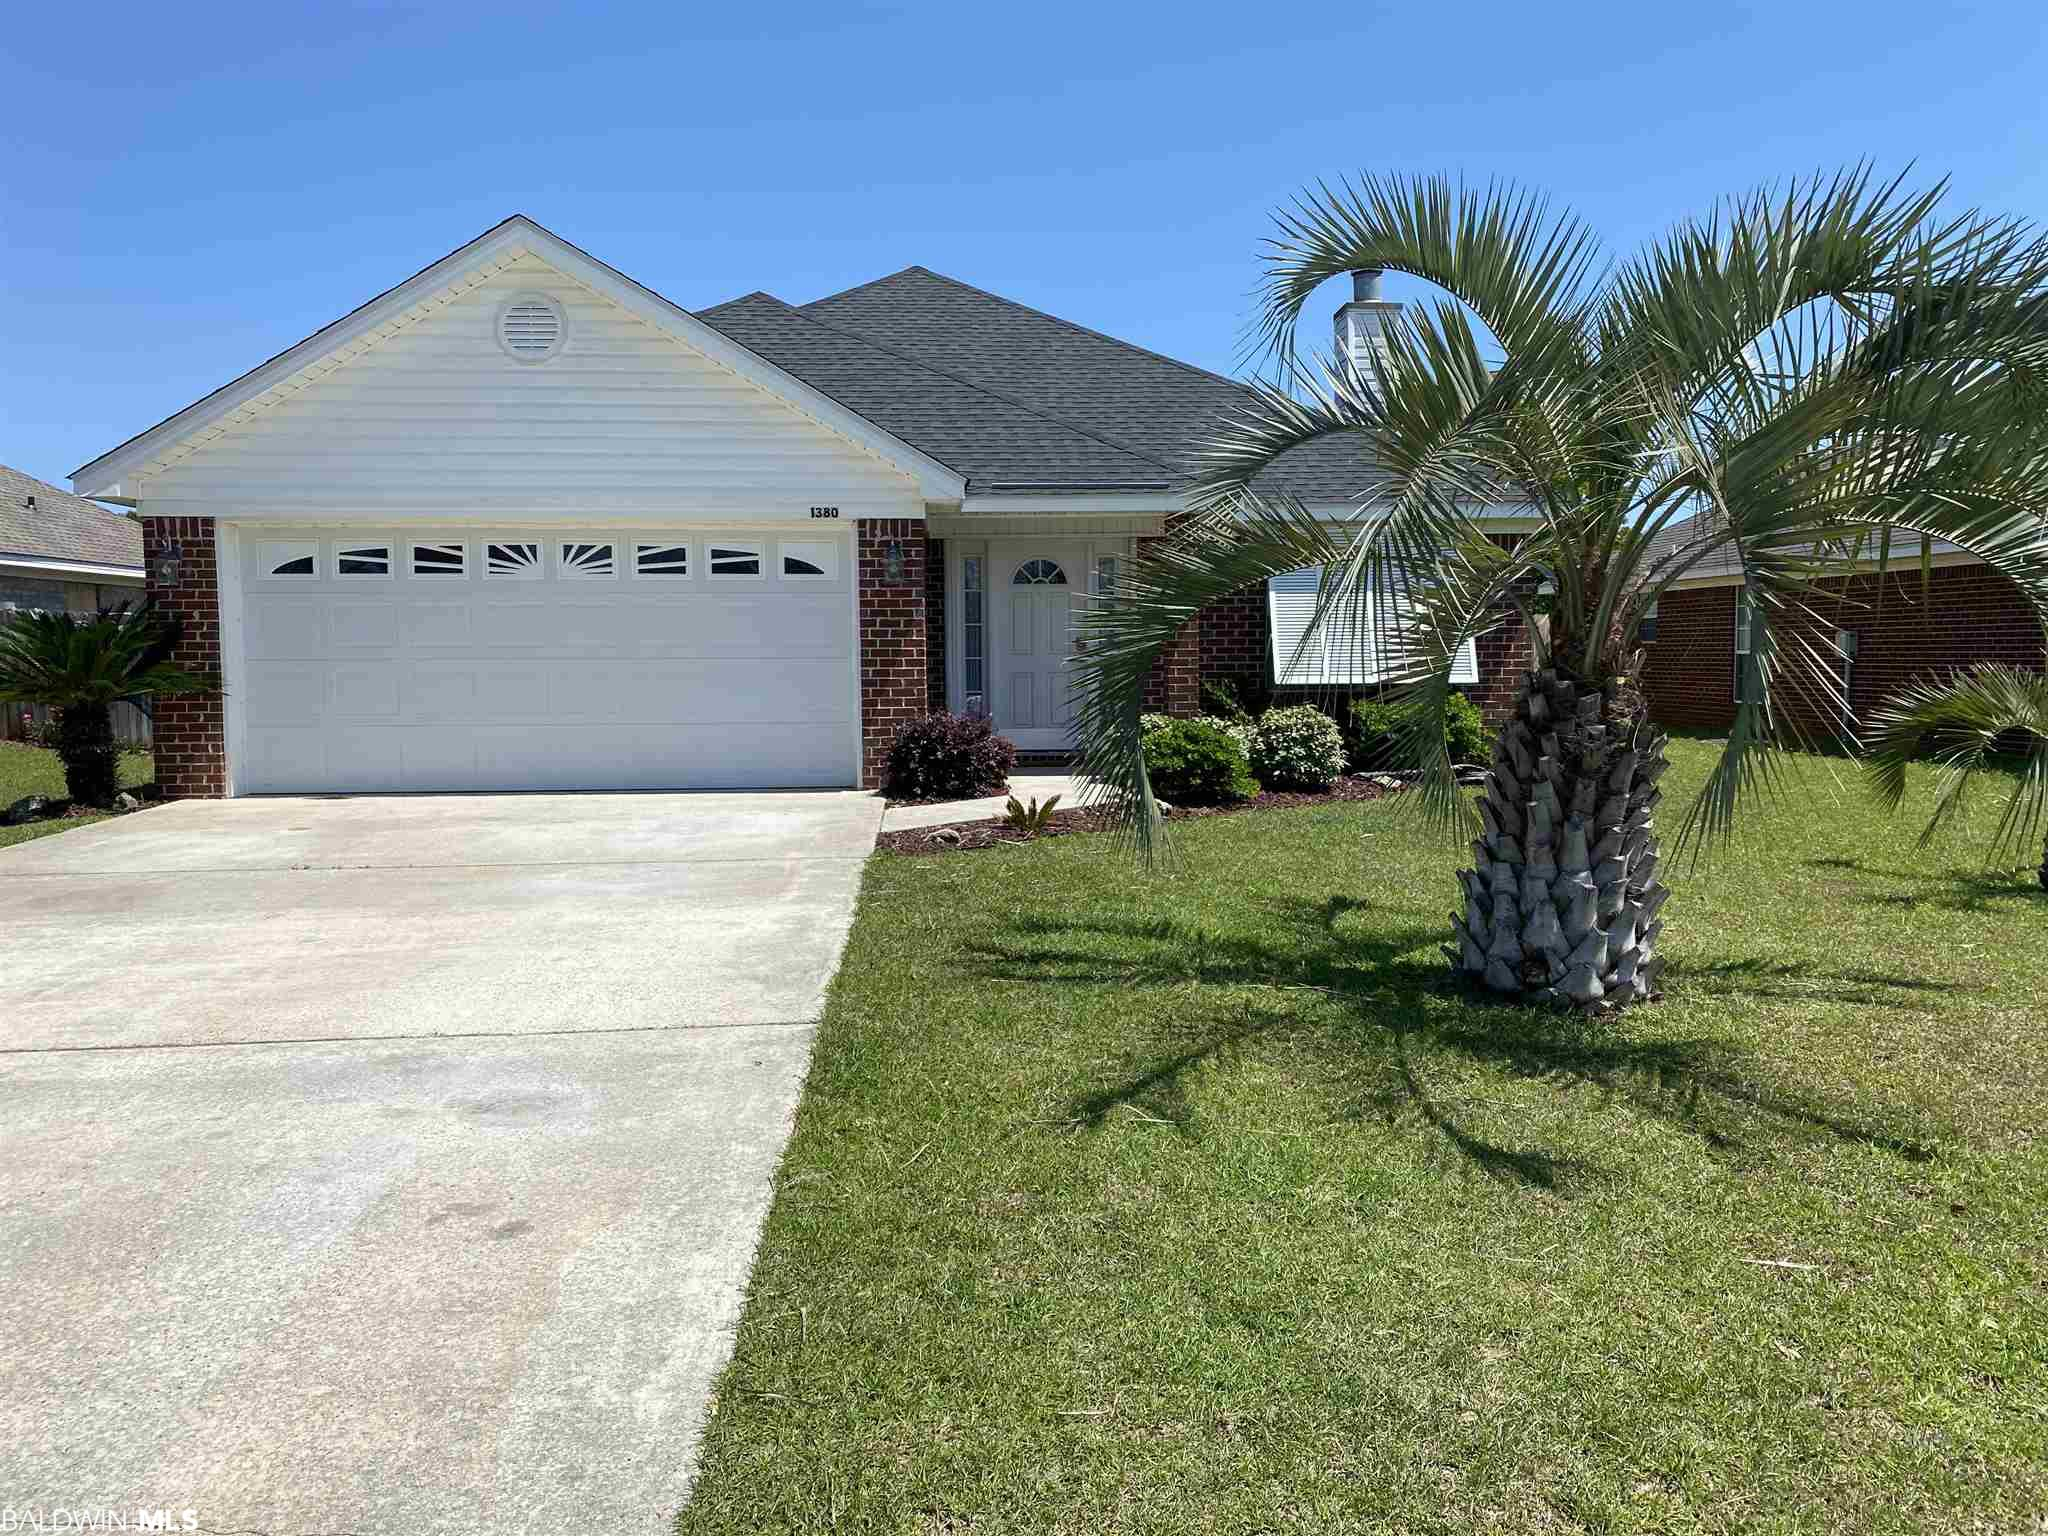 Beautiful home in ideal Gulf Shores location, close to beaches, lagoon and dining. Zoned in the highly sought after school district of the Gulf Shores schools. Home has been nicely updated with new roof, new HVAC .  The kitchen has new stainless appliances and granite, new plumbing fixtures. Baths have new granite and plumbing fixtures.  Spacious backyard with a new fence. Large enough for a pool.  Screened porch and outdoor patio for entertaining. Outdoor shower, ideal for rinsing after a day at the beach. New paint with soothing coastal colors and decor throughout the home.  Easy access to walking and biking path along Fort Morgan Rd.